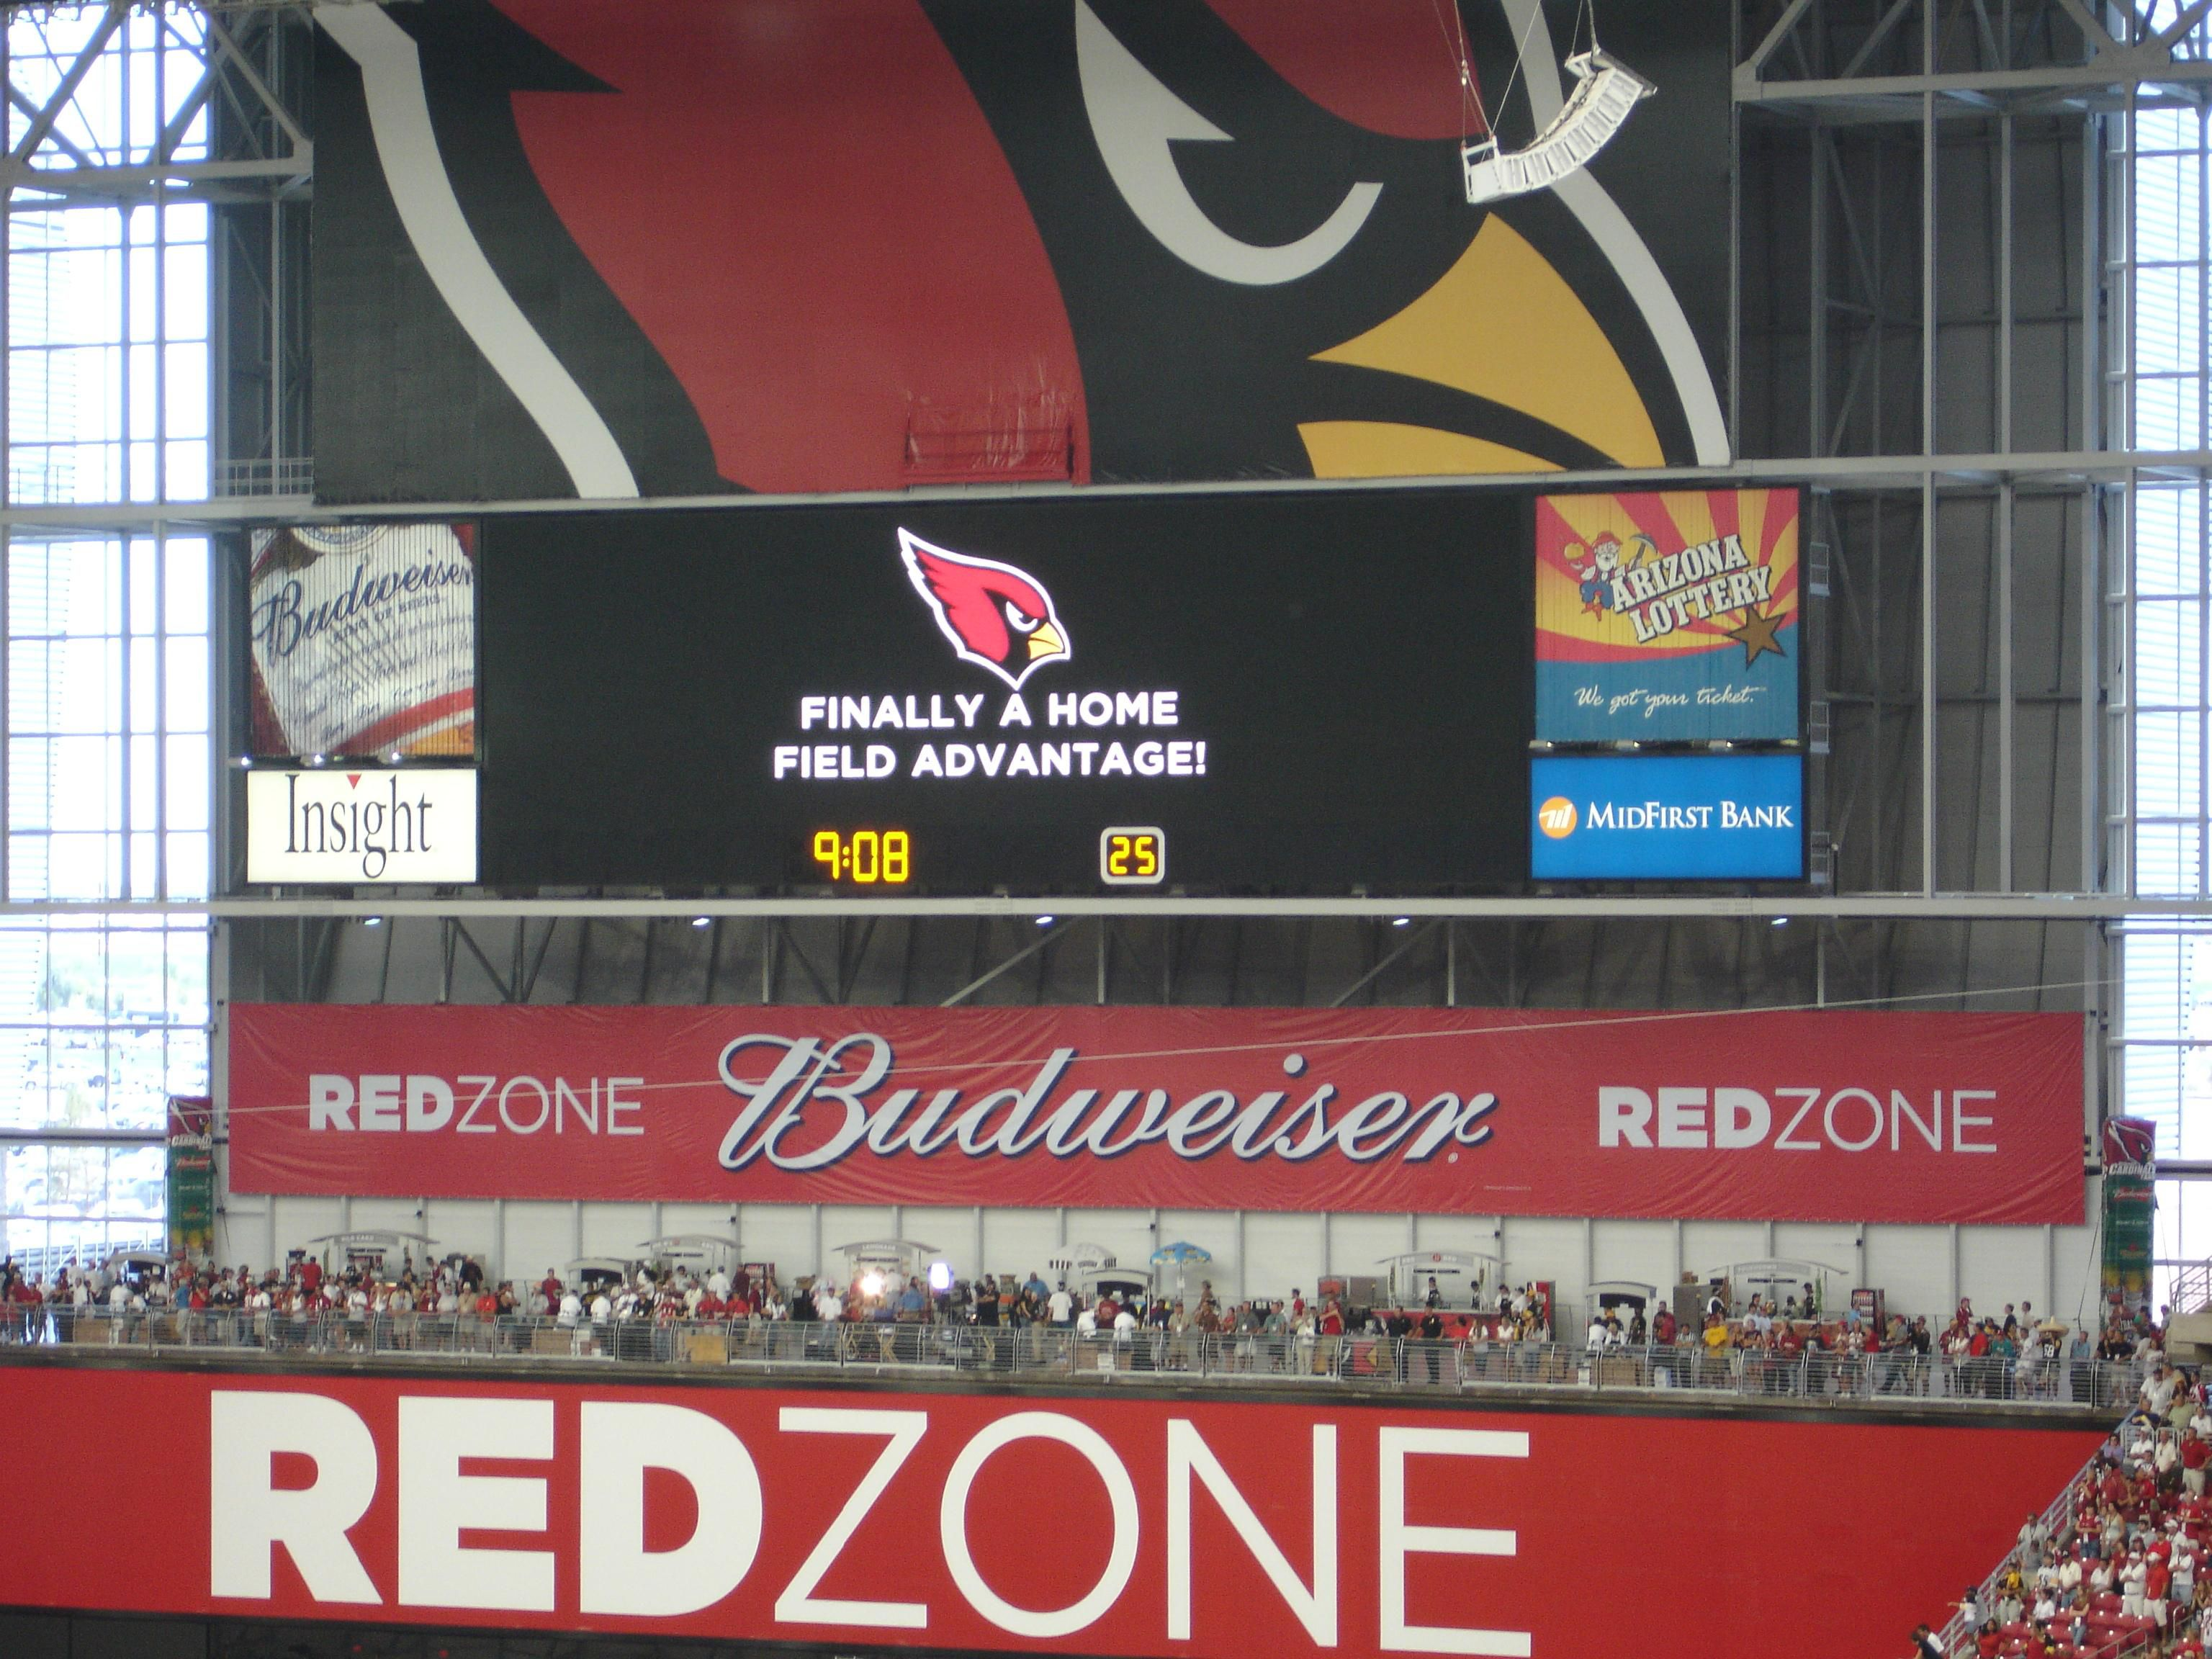 Check out the RED ZONE at University of Phx Stadium